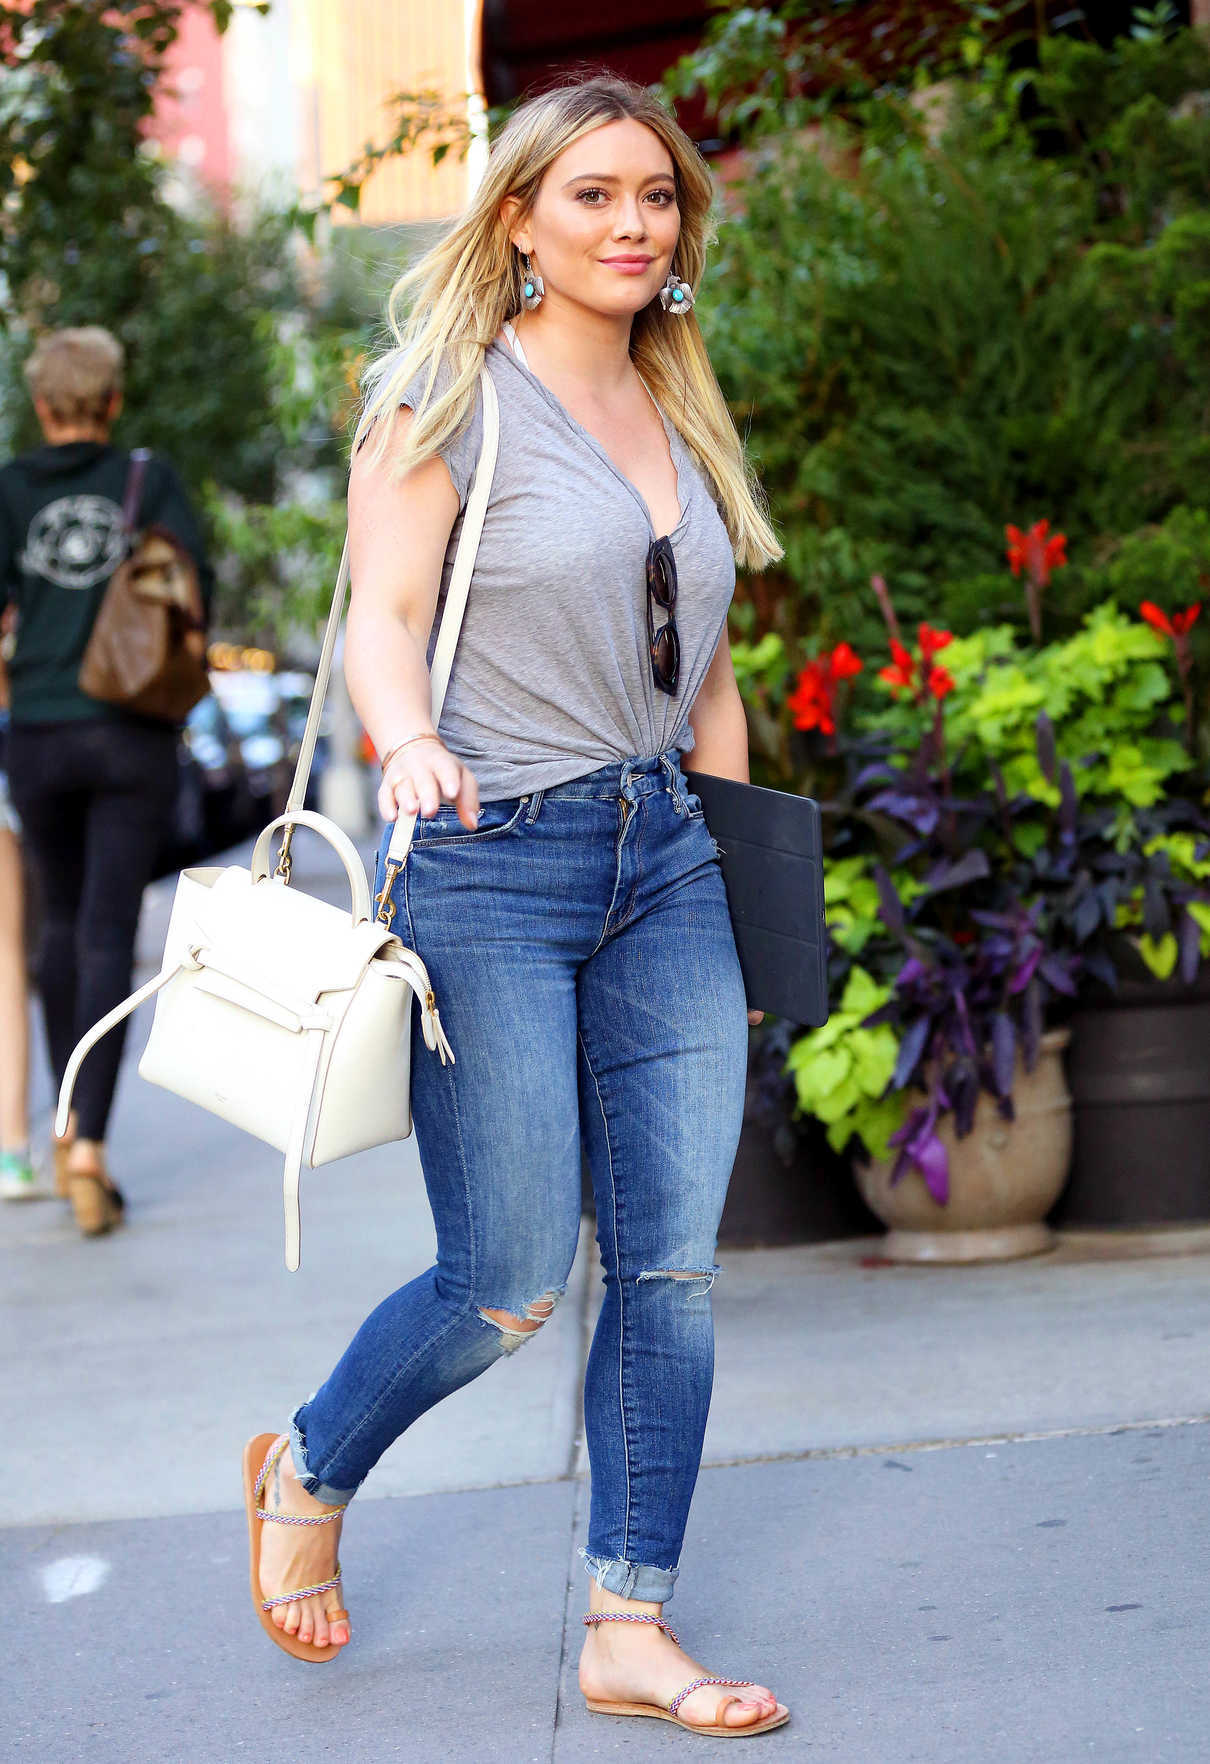 Hilary Duff Was Seen O... Hilary Duff